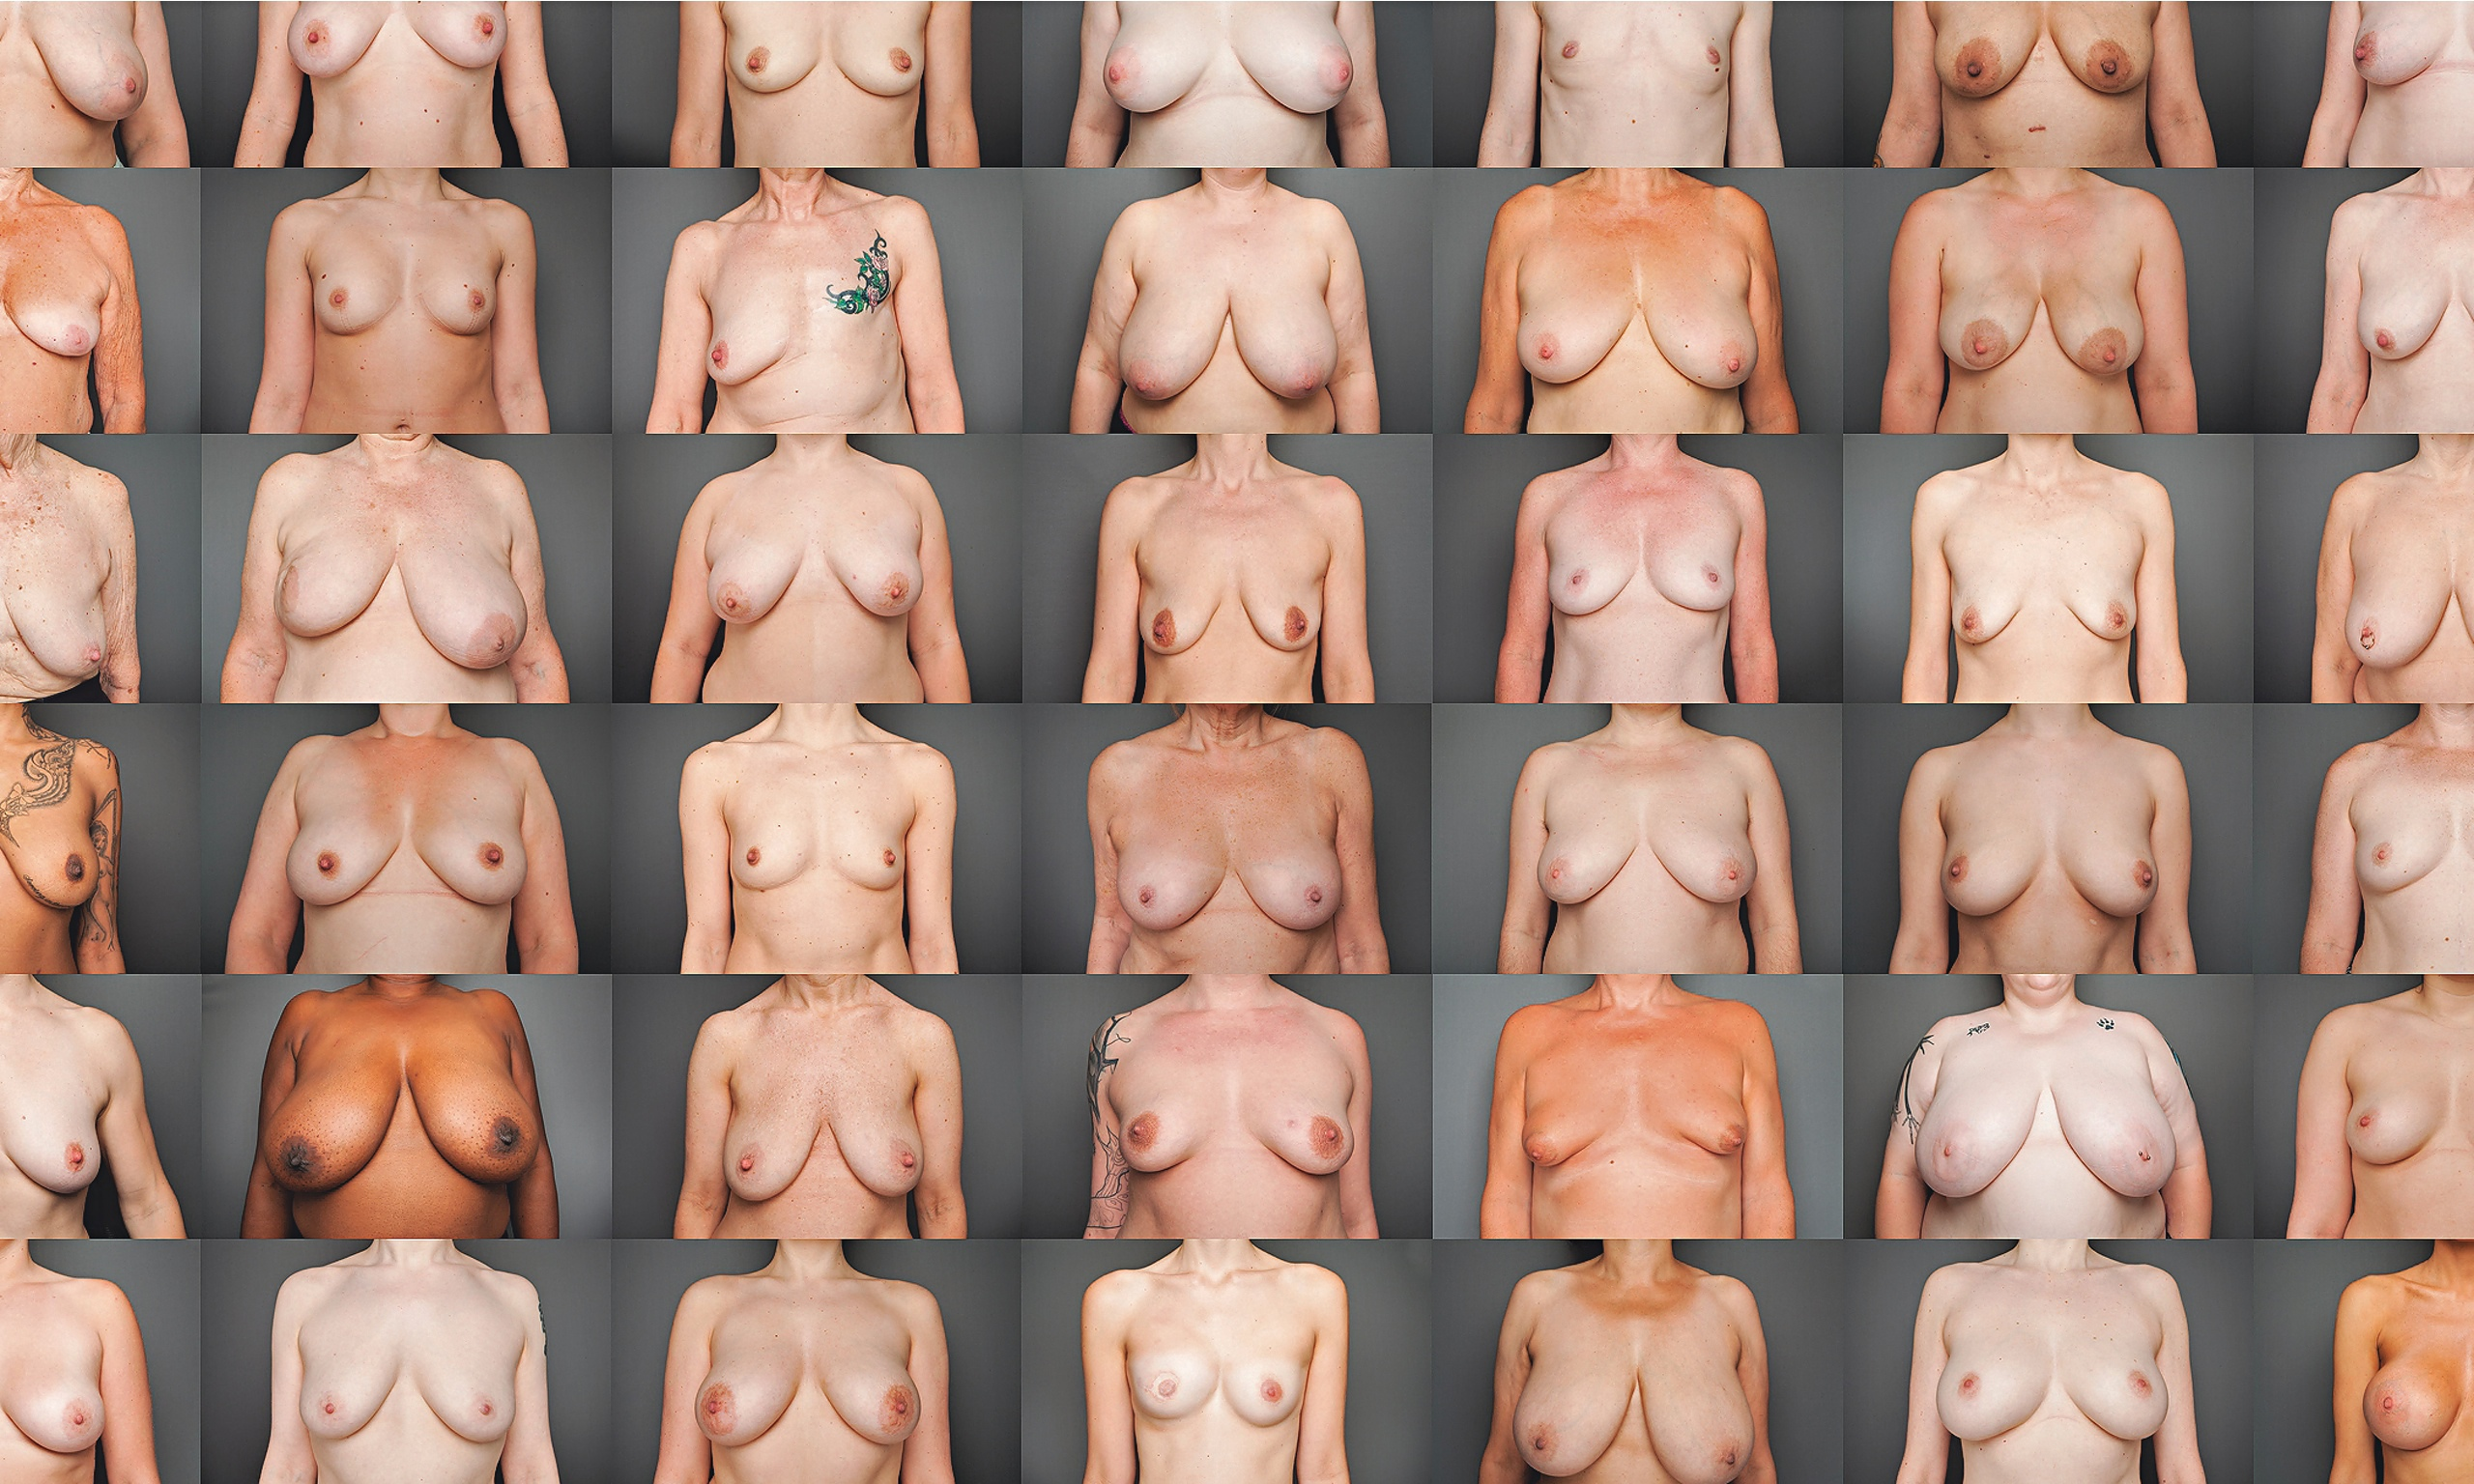 All the breast sizes